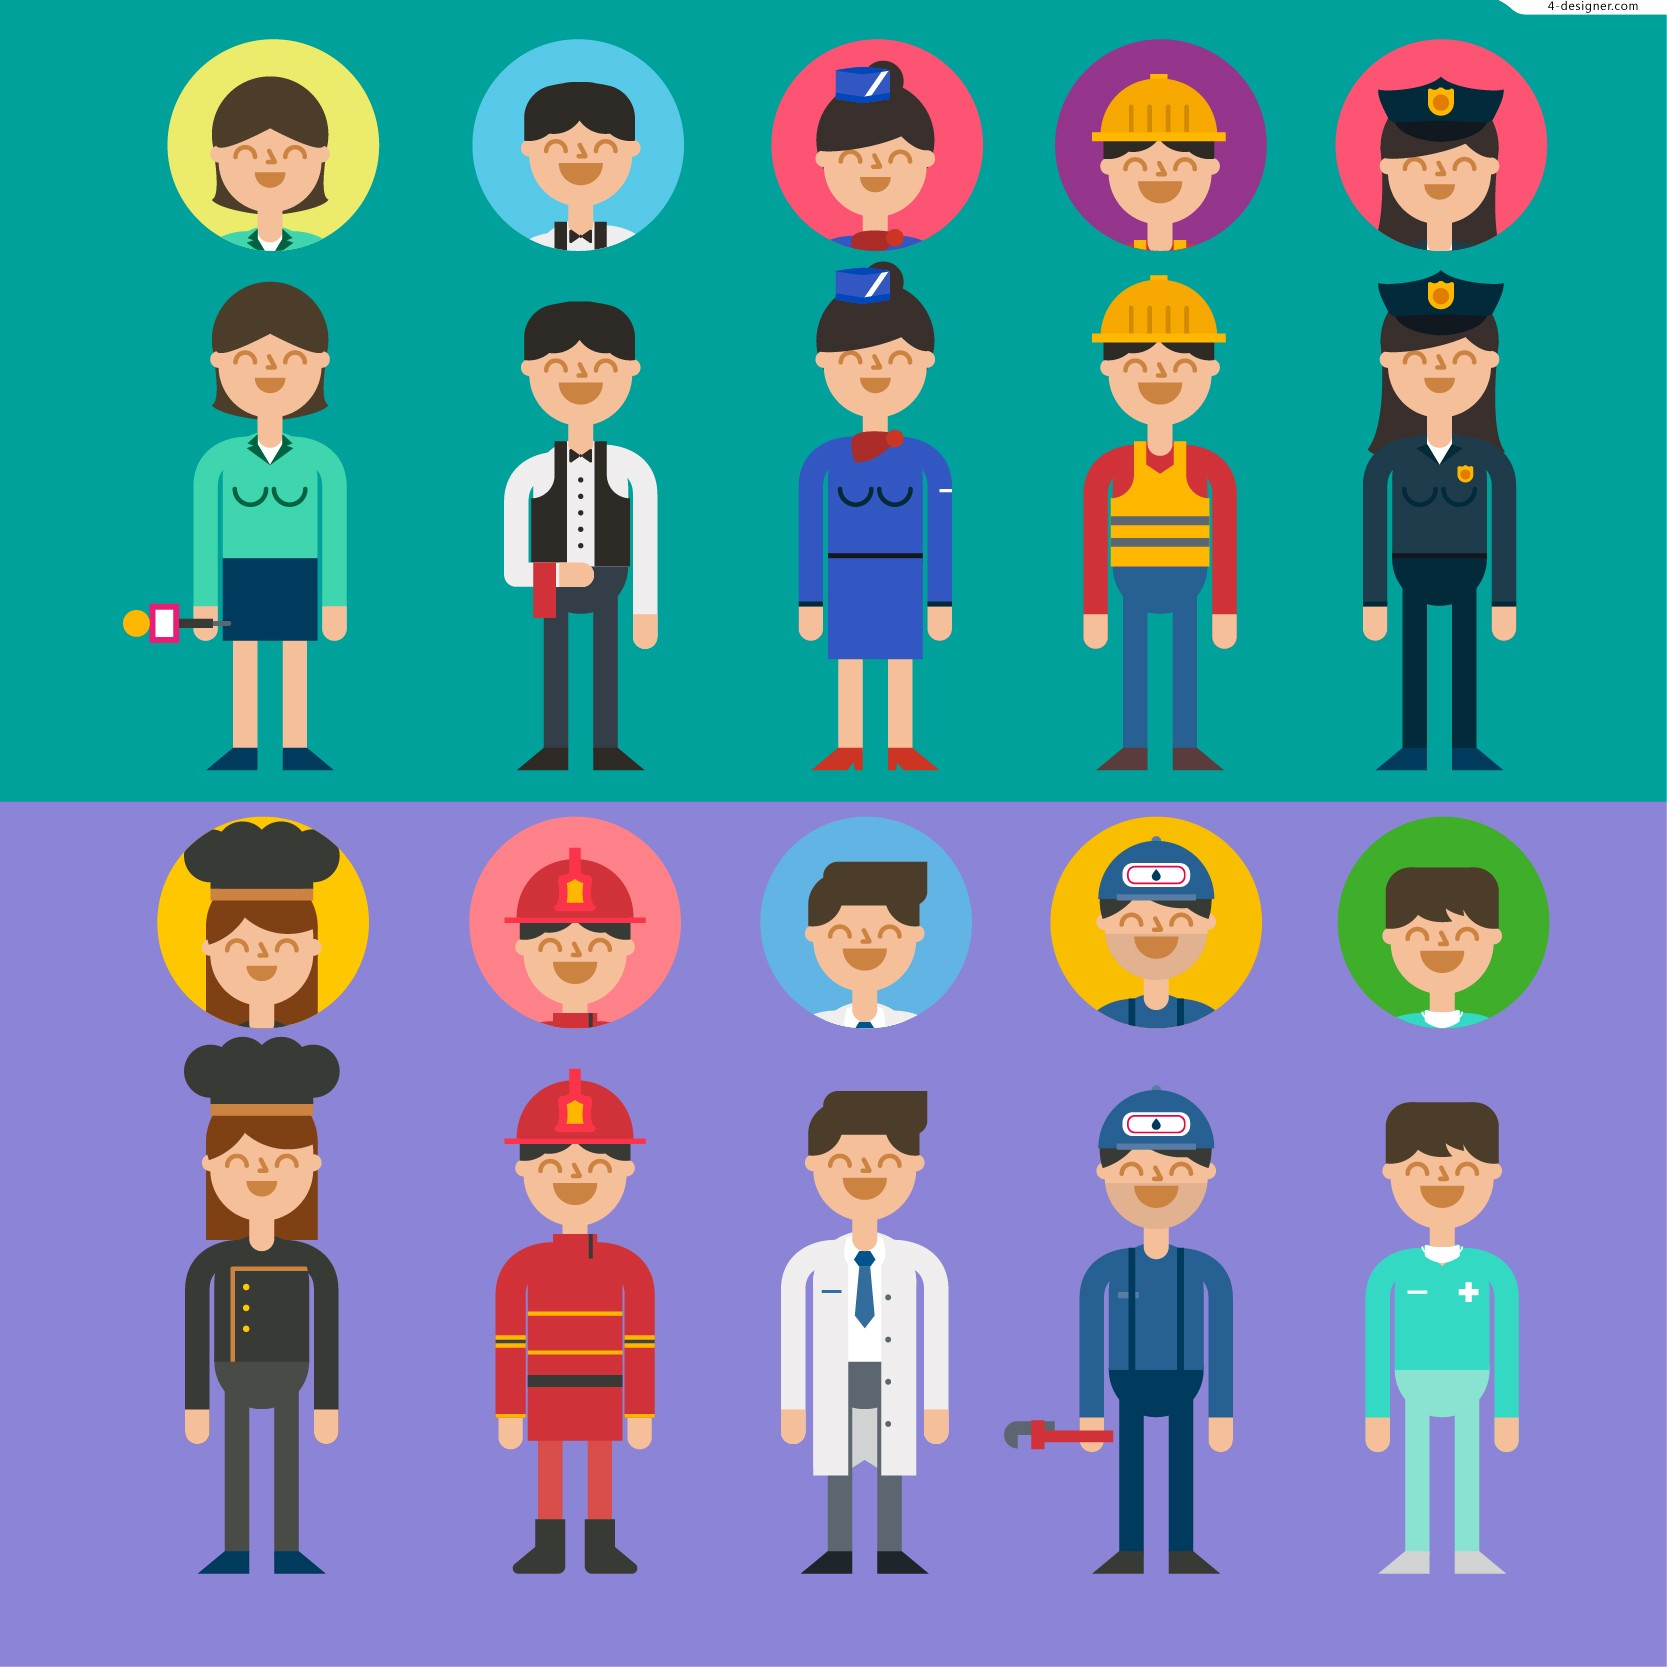 The 10 occupational figures and head vector material